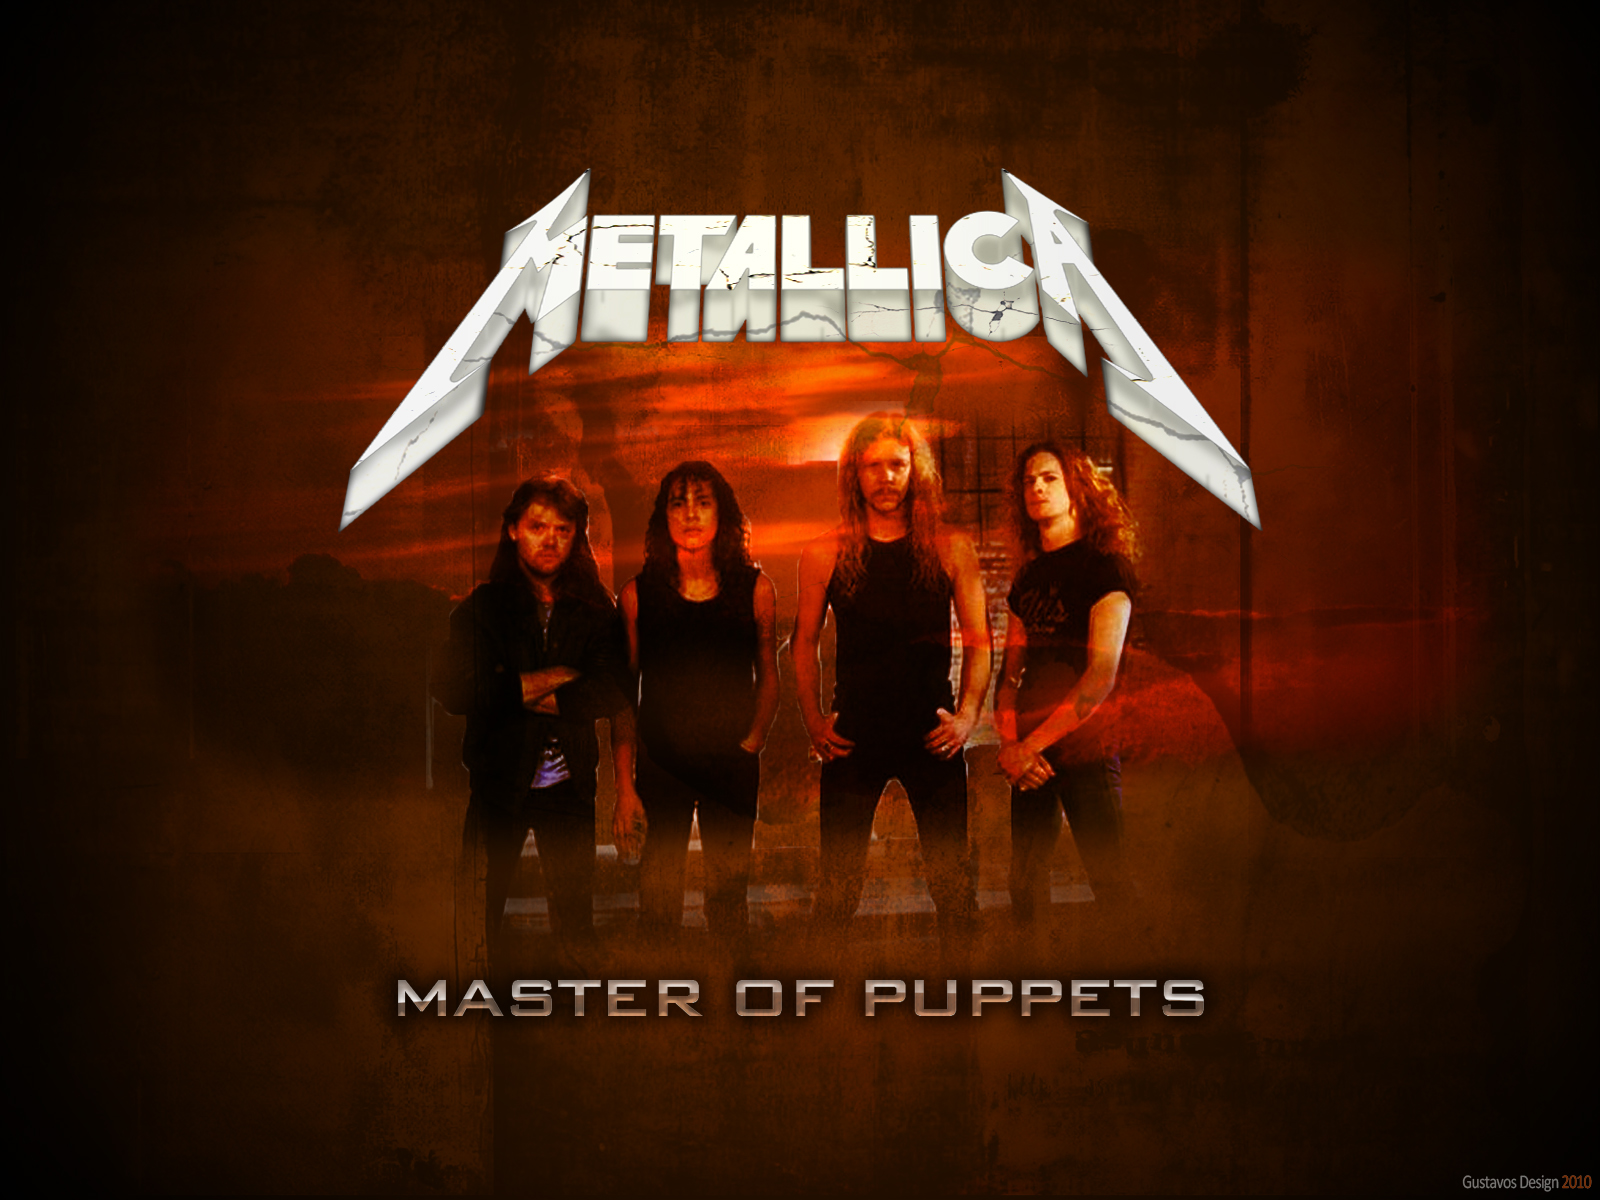 Metallica Master of Puppets Wallpaper - WallpaperSafari